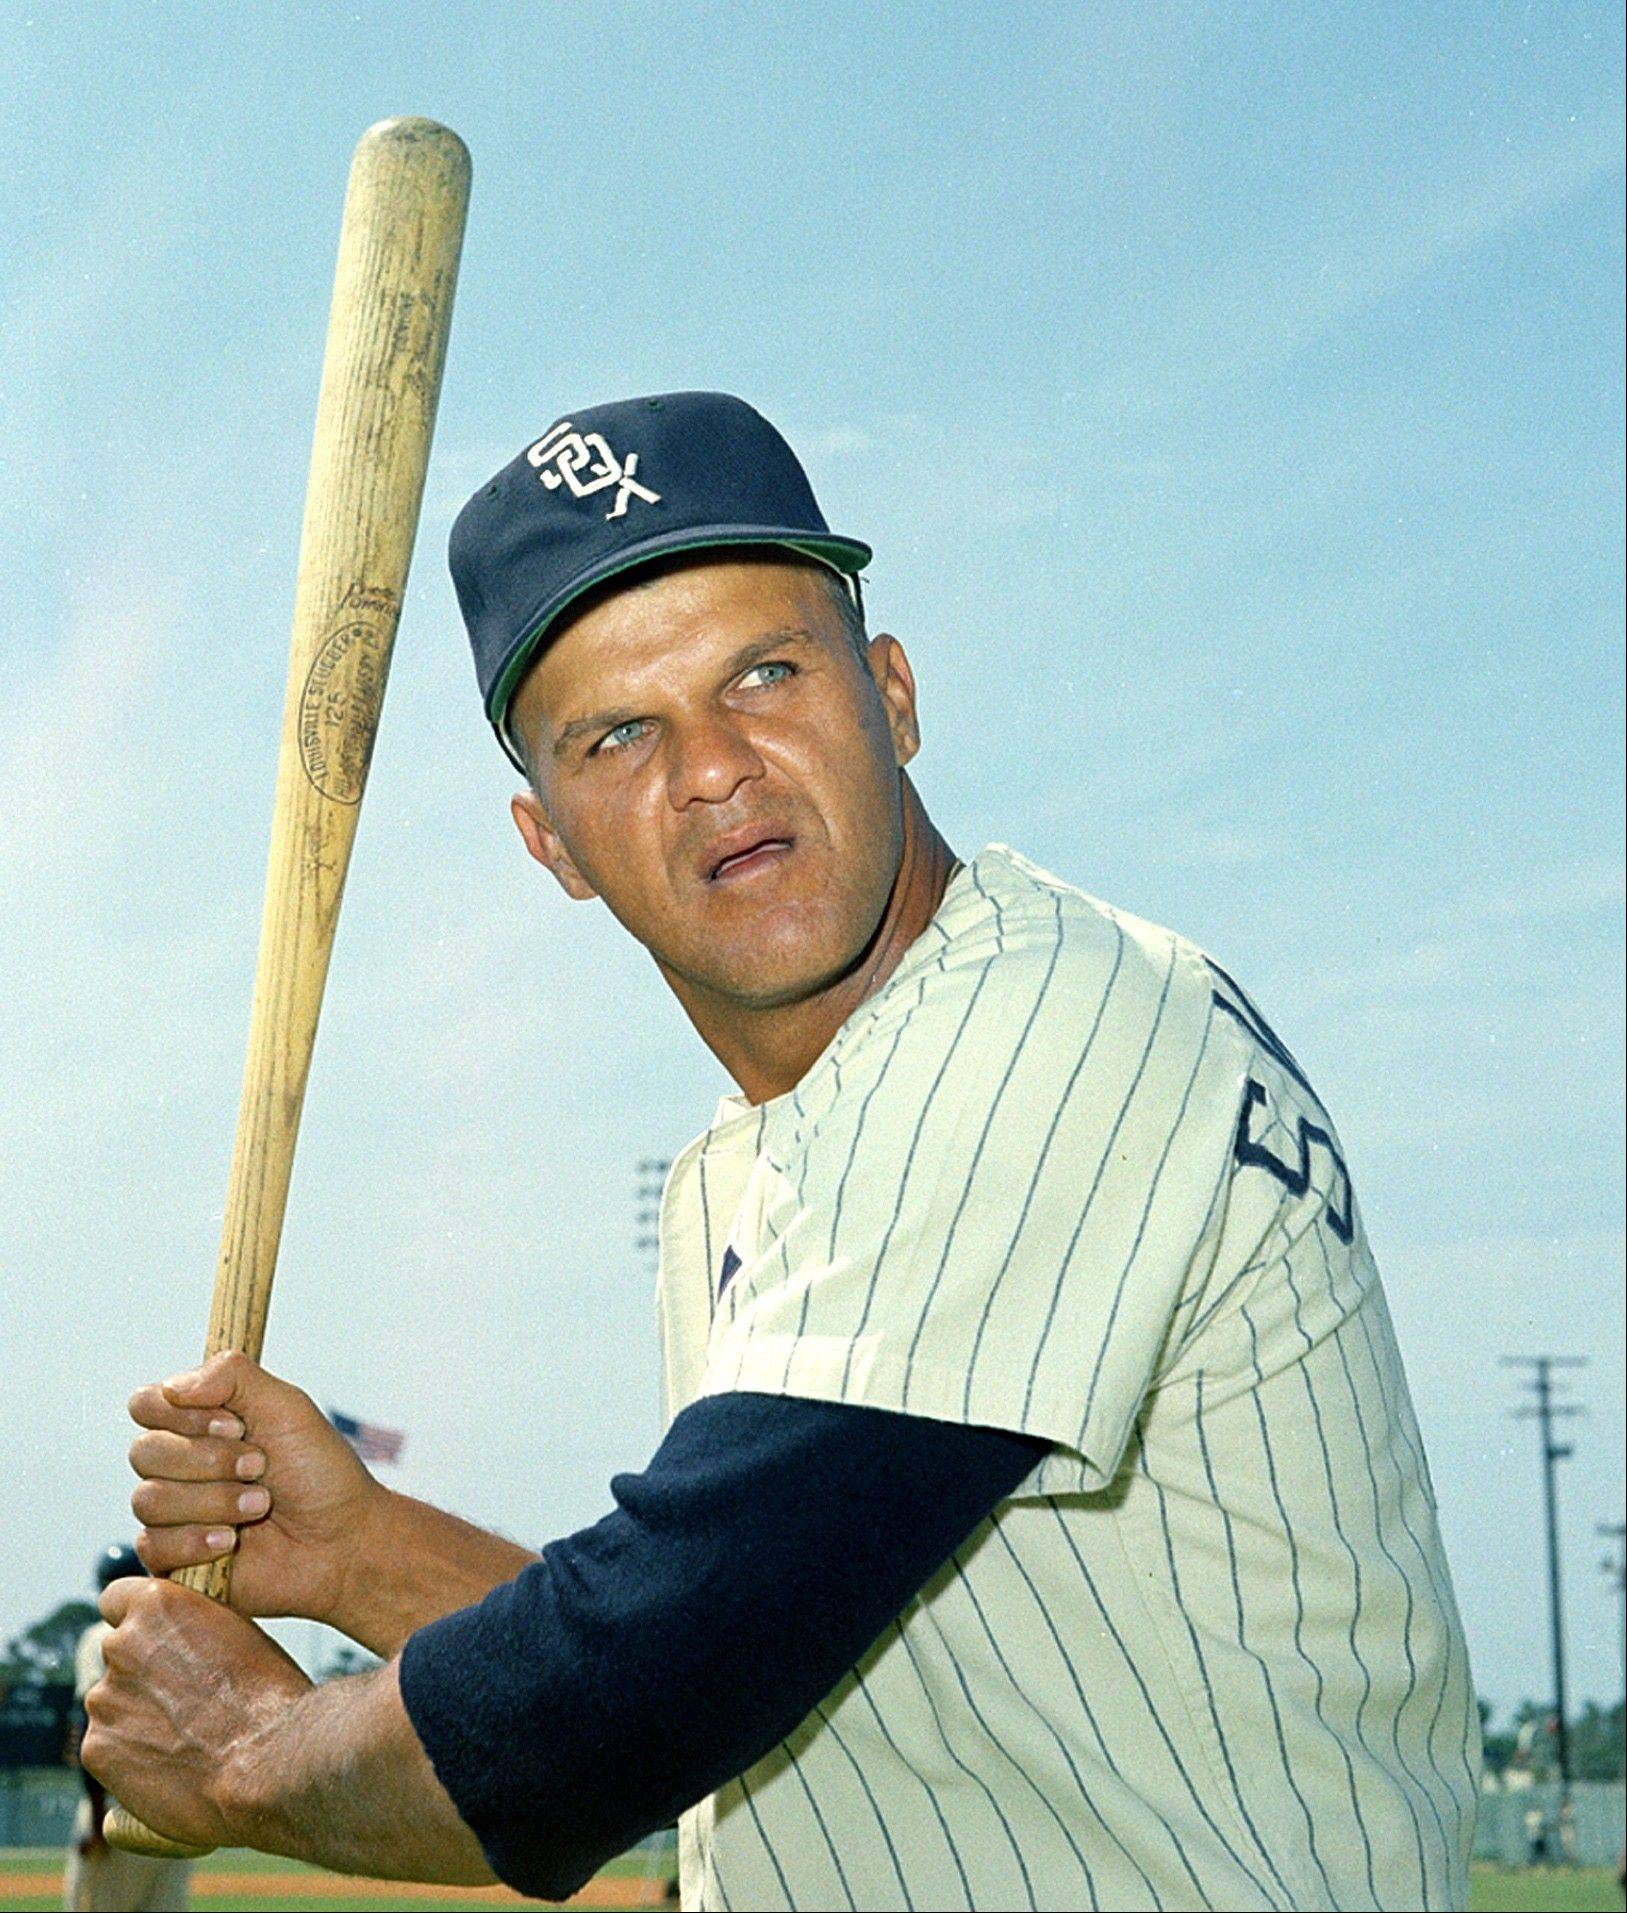 Bill Skowron of the Chicago White Sox, a four-time All-Star first baseman who helped the New Yankees win four World Series titles in the 1950s and 1960s, died Friday in at Northwest Community Hospital. He was 81. He also played for the Los Angeles Dodgers, the Washington Senators,and the California Angels.